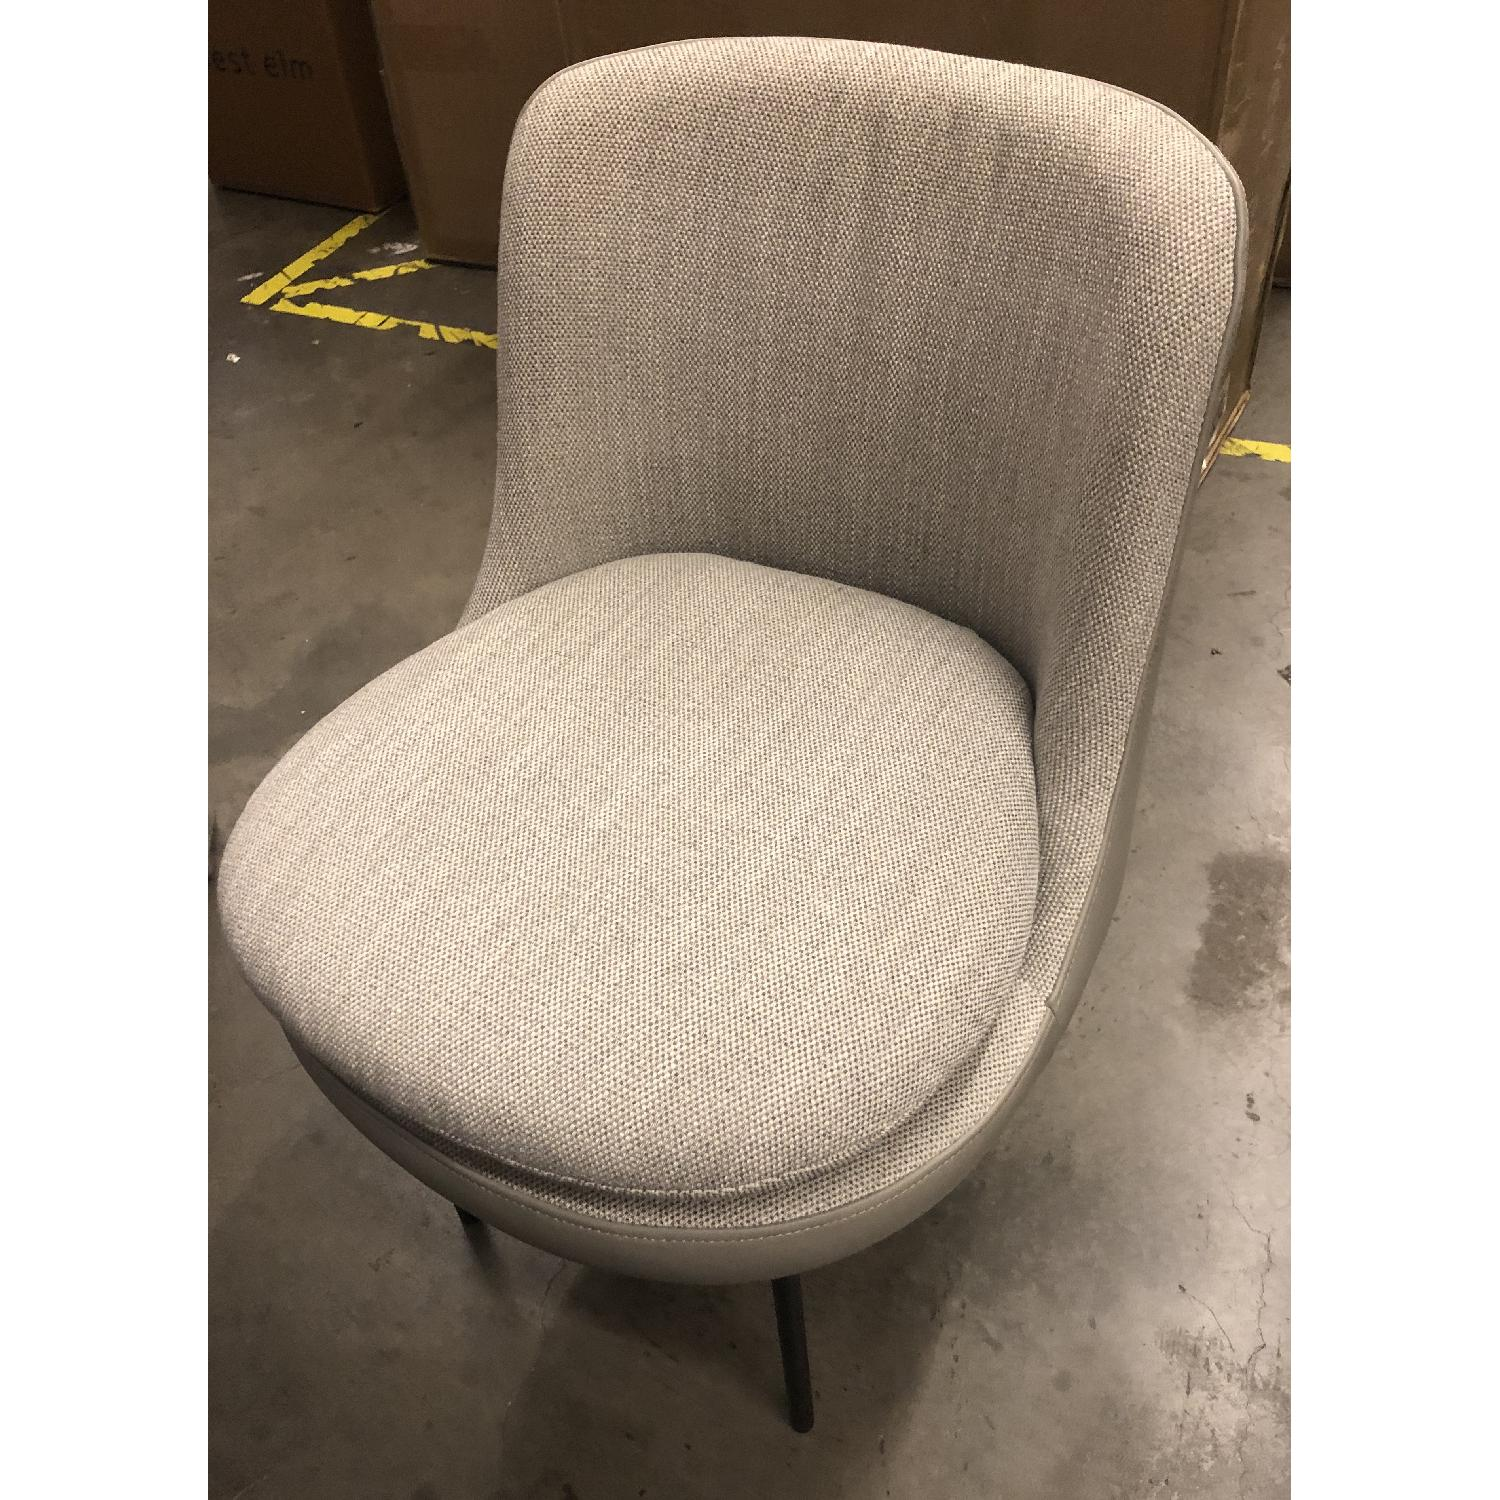 West Elm Modern Curved Chair - image-2